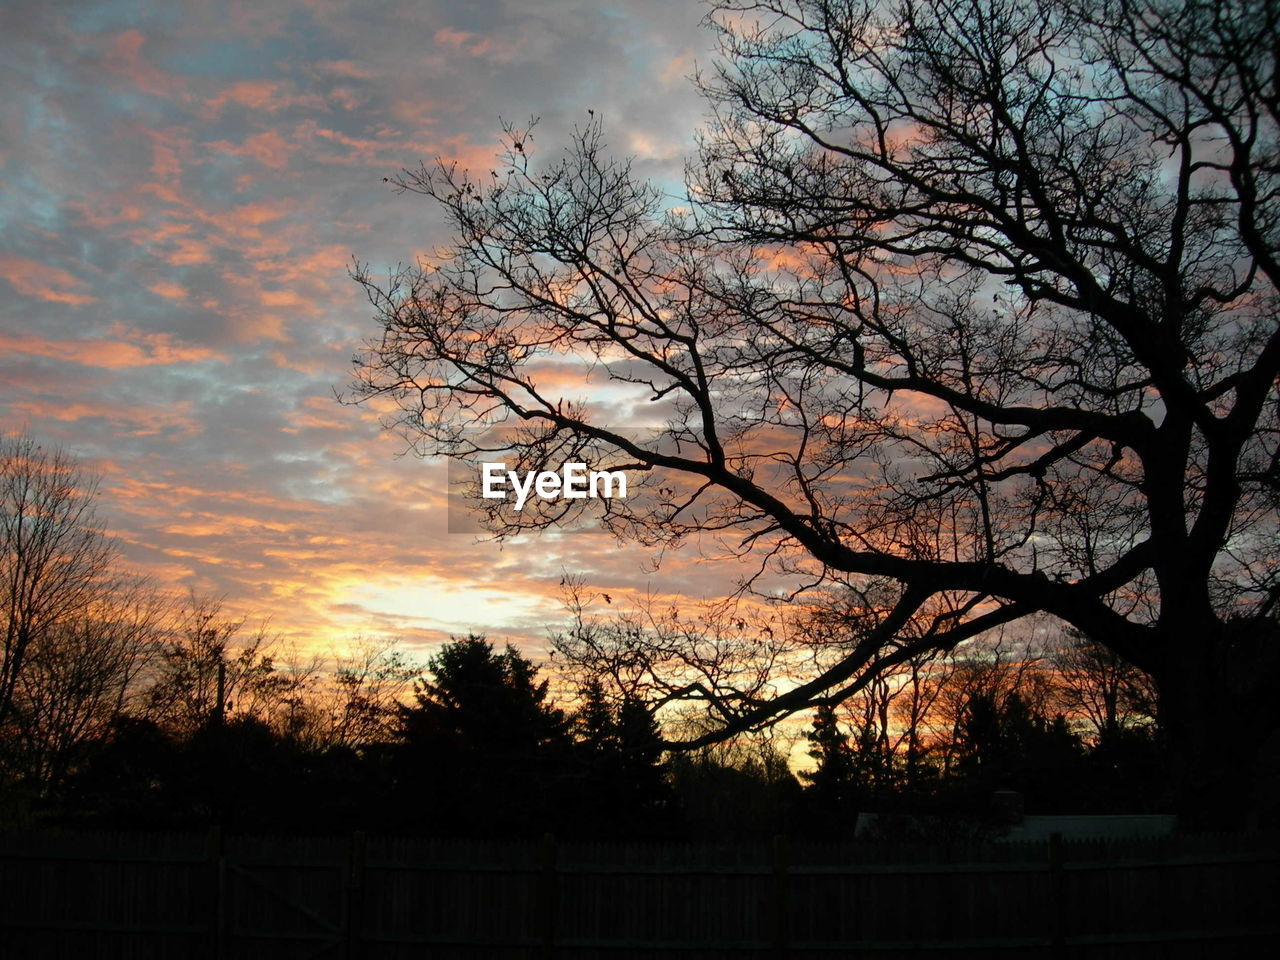 tree, sunset, sky, plant, cloud - sky, silhouette, beauty in nature, nature, no people, tranquility, scenics - nature, bare tree, branch, tranquil scene, orange color, outdoors, dusk, environment, growth, landscape